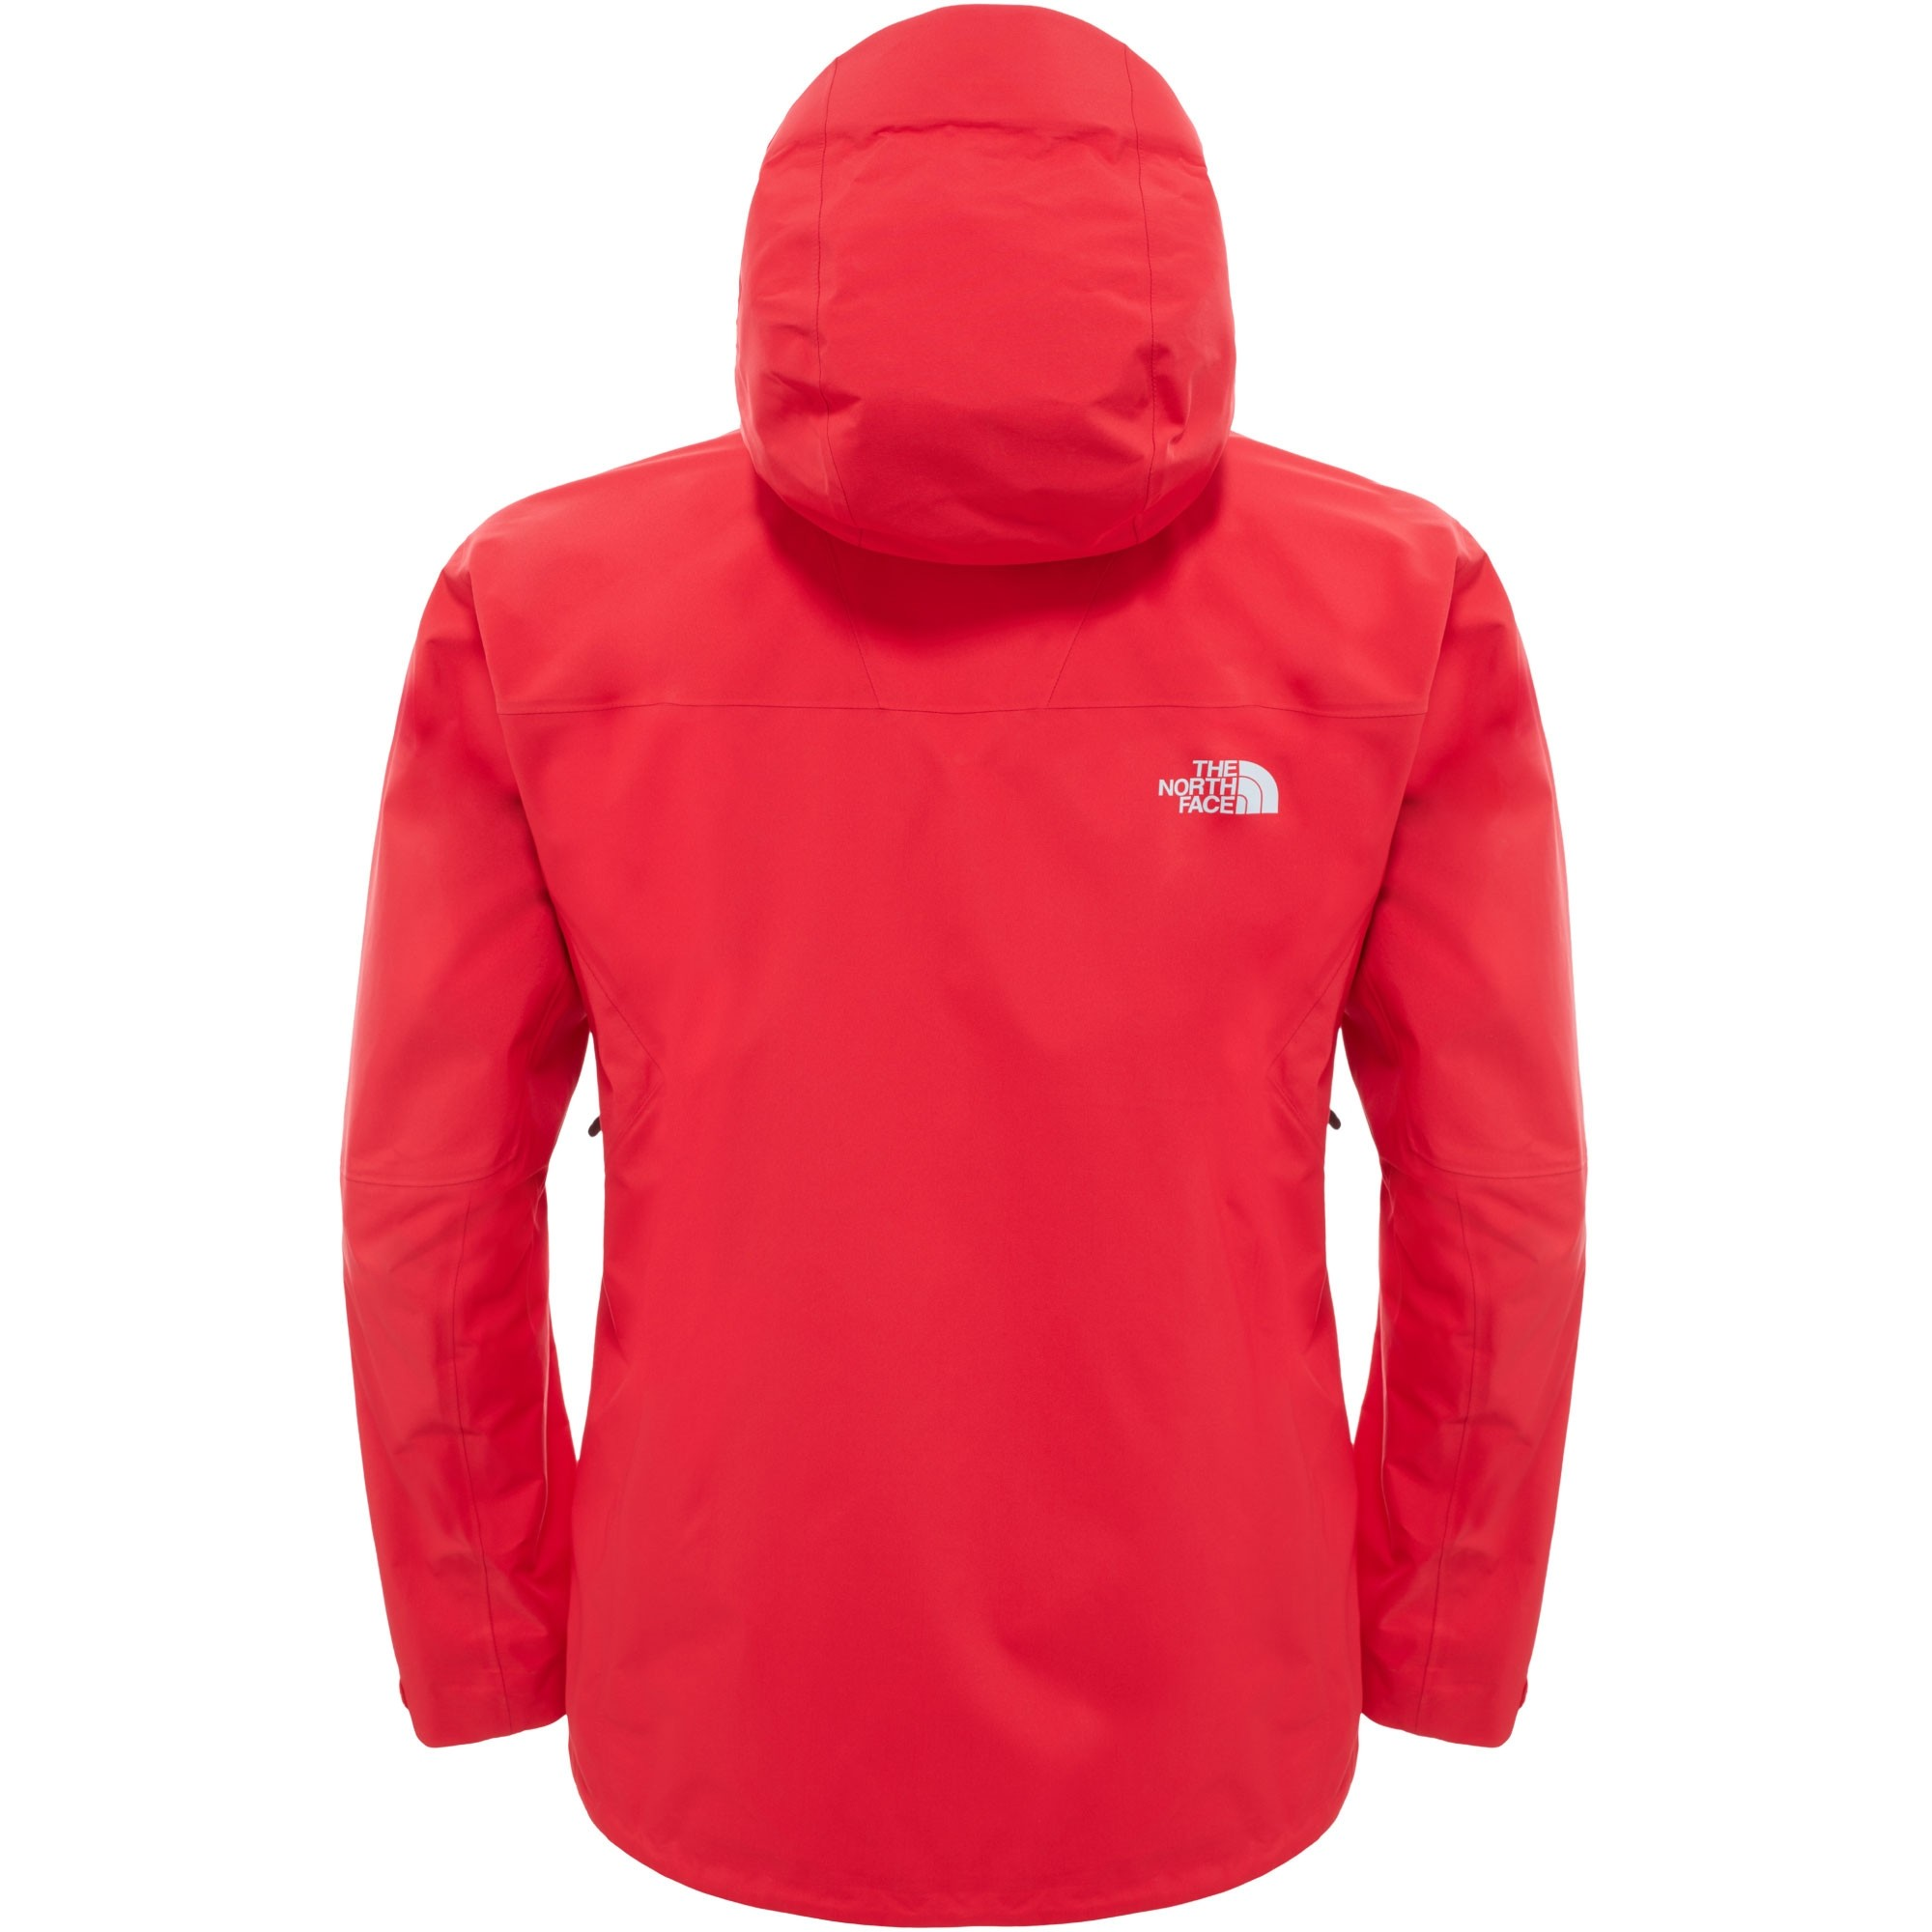 The-North-Face-Mens-Point-Five-GTX-Jacket-TNF-Red-1-W17